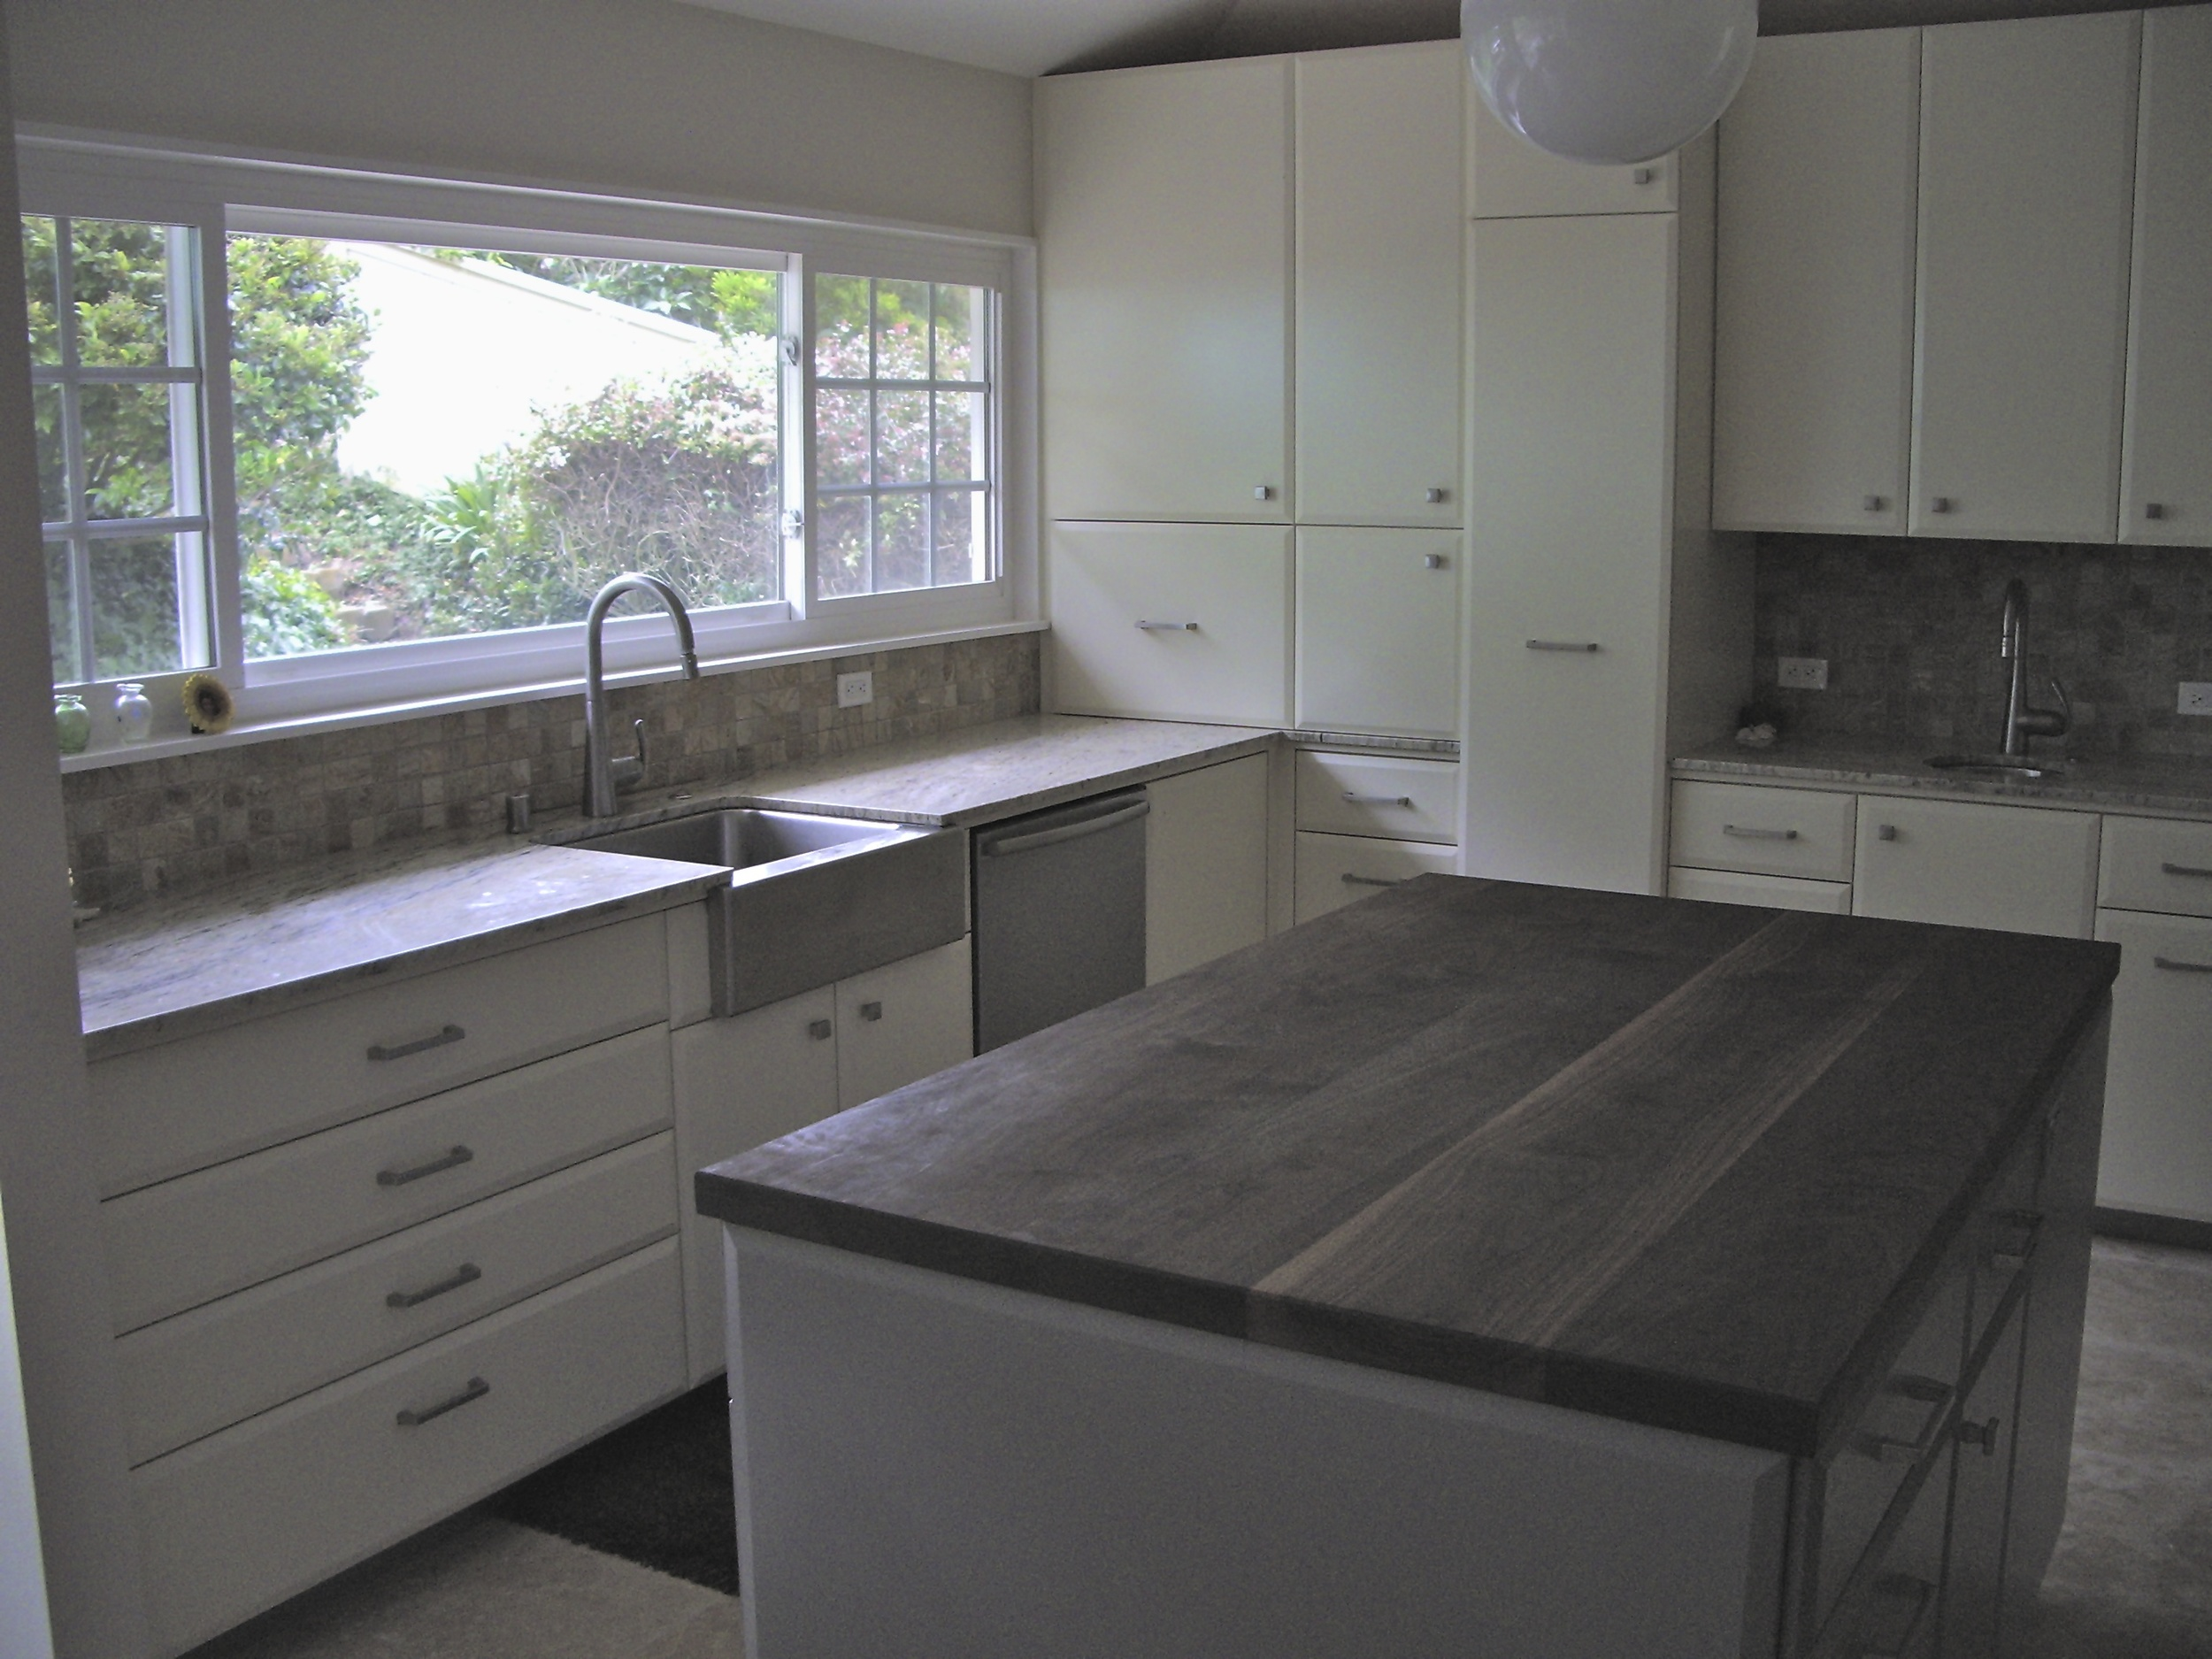 Cabinets feature many pull out drawerswith soft close hardware.